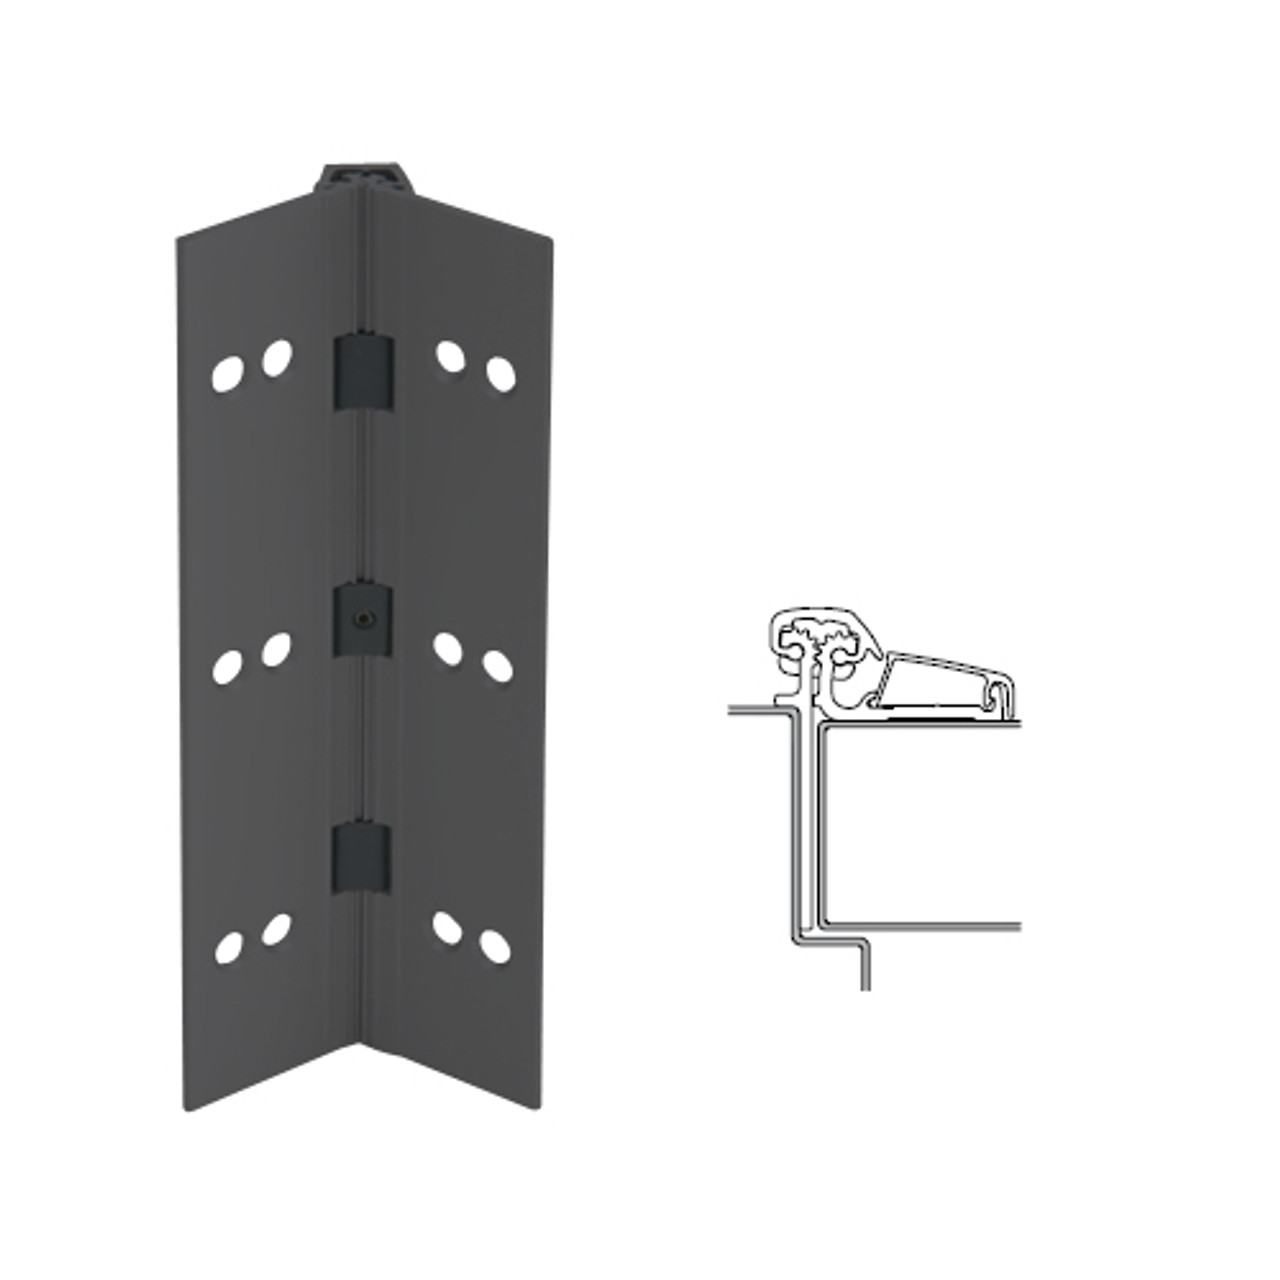 054XY-315AN-95-TEKWD IVES Adjustable Half Surface Continuous Geared Hinges with Wood Screws in Anodized Black